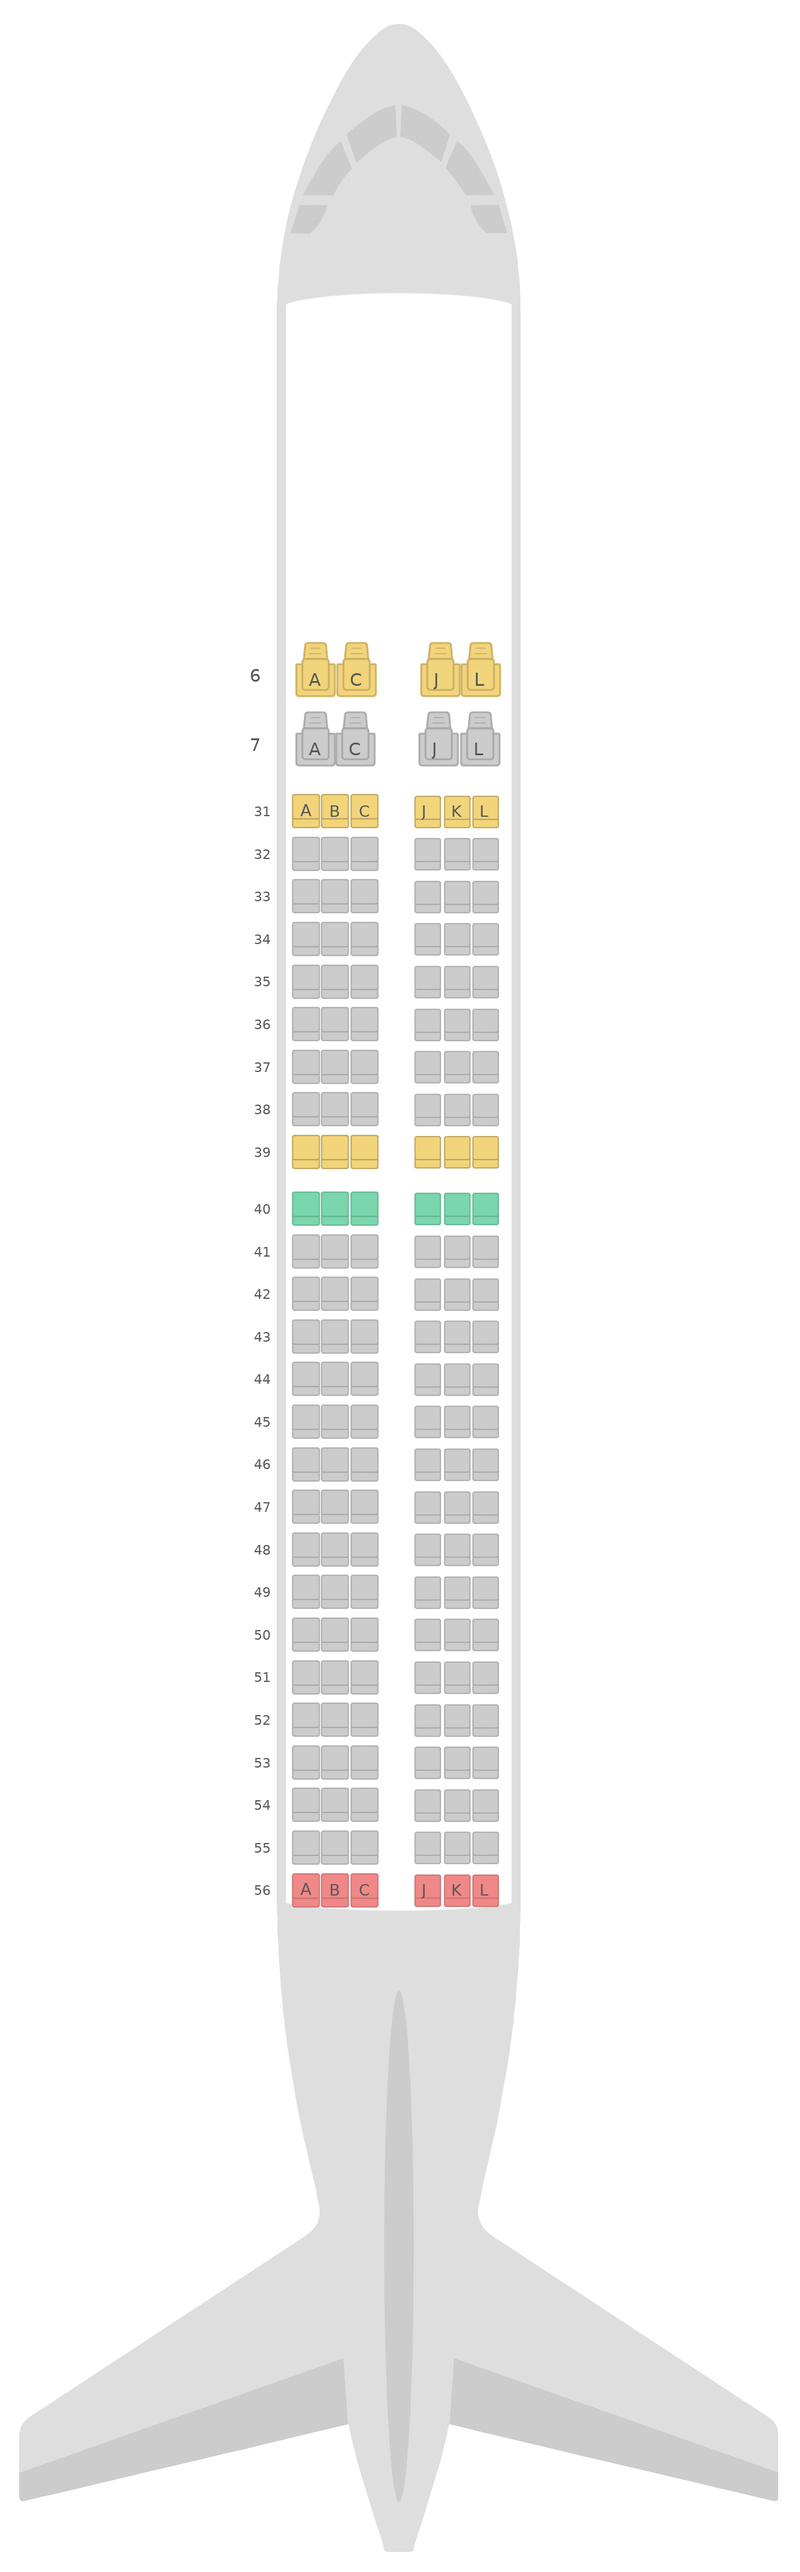 Seat Map China Eastern Airlines Boeing 737-800 (738) v1